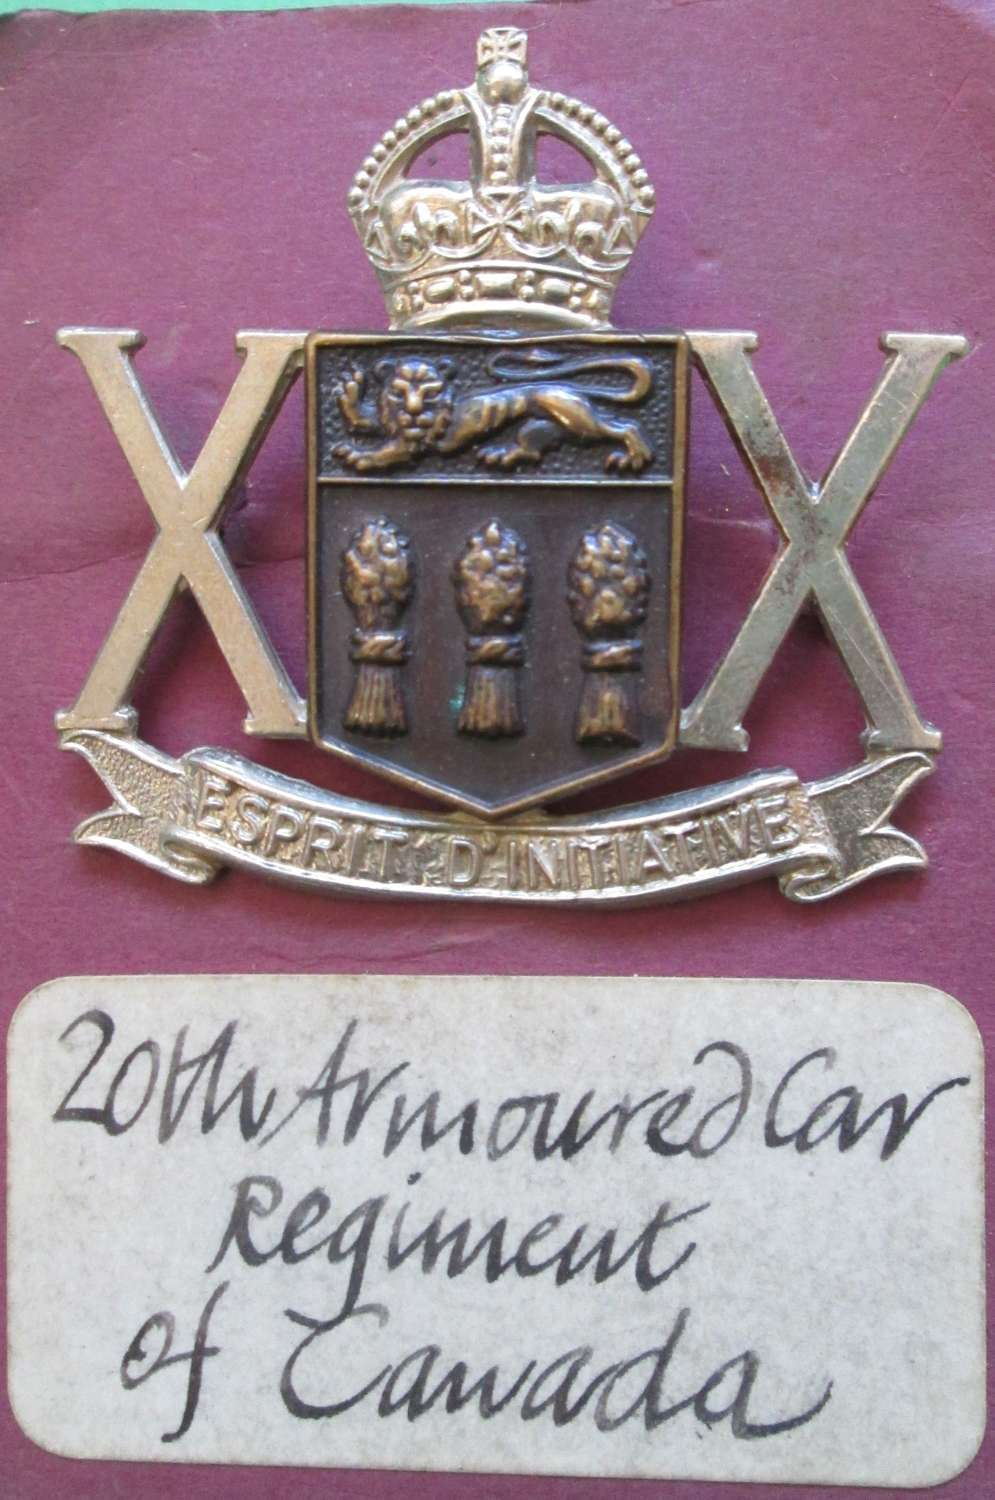 A 20TH ARMOURED CAR REGIMENT OF CANADA CAP BADGE